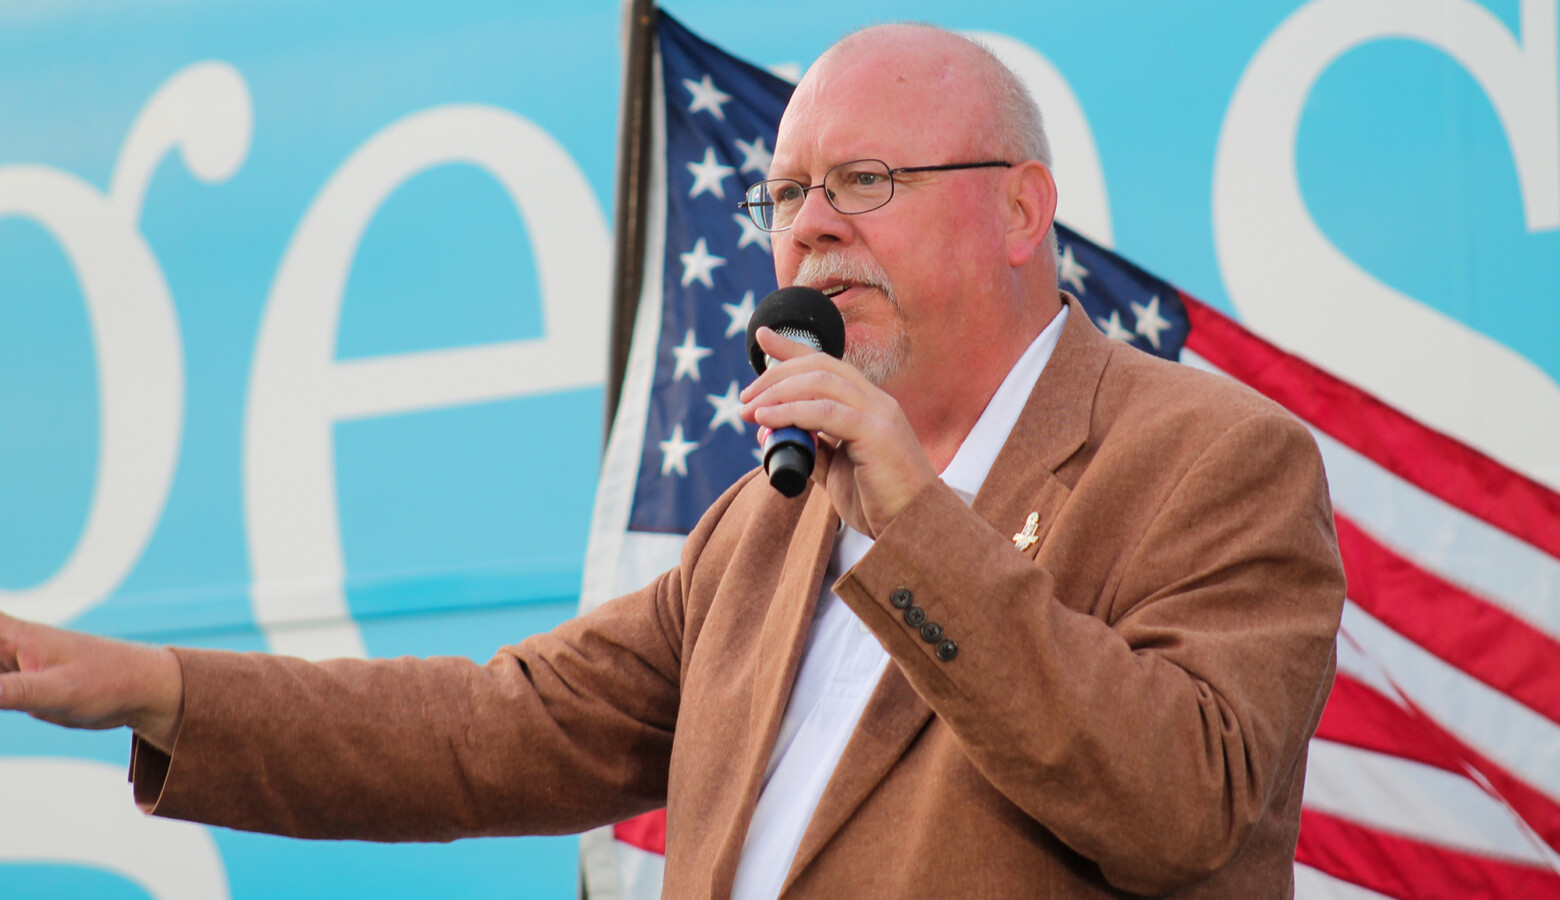 Libertarian candidate for governor Donald Rainwater has announced he will appoint Dawn Wooten as Indiana's education secretary, should he win the election. (Lauren Chapman/IPB News)